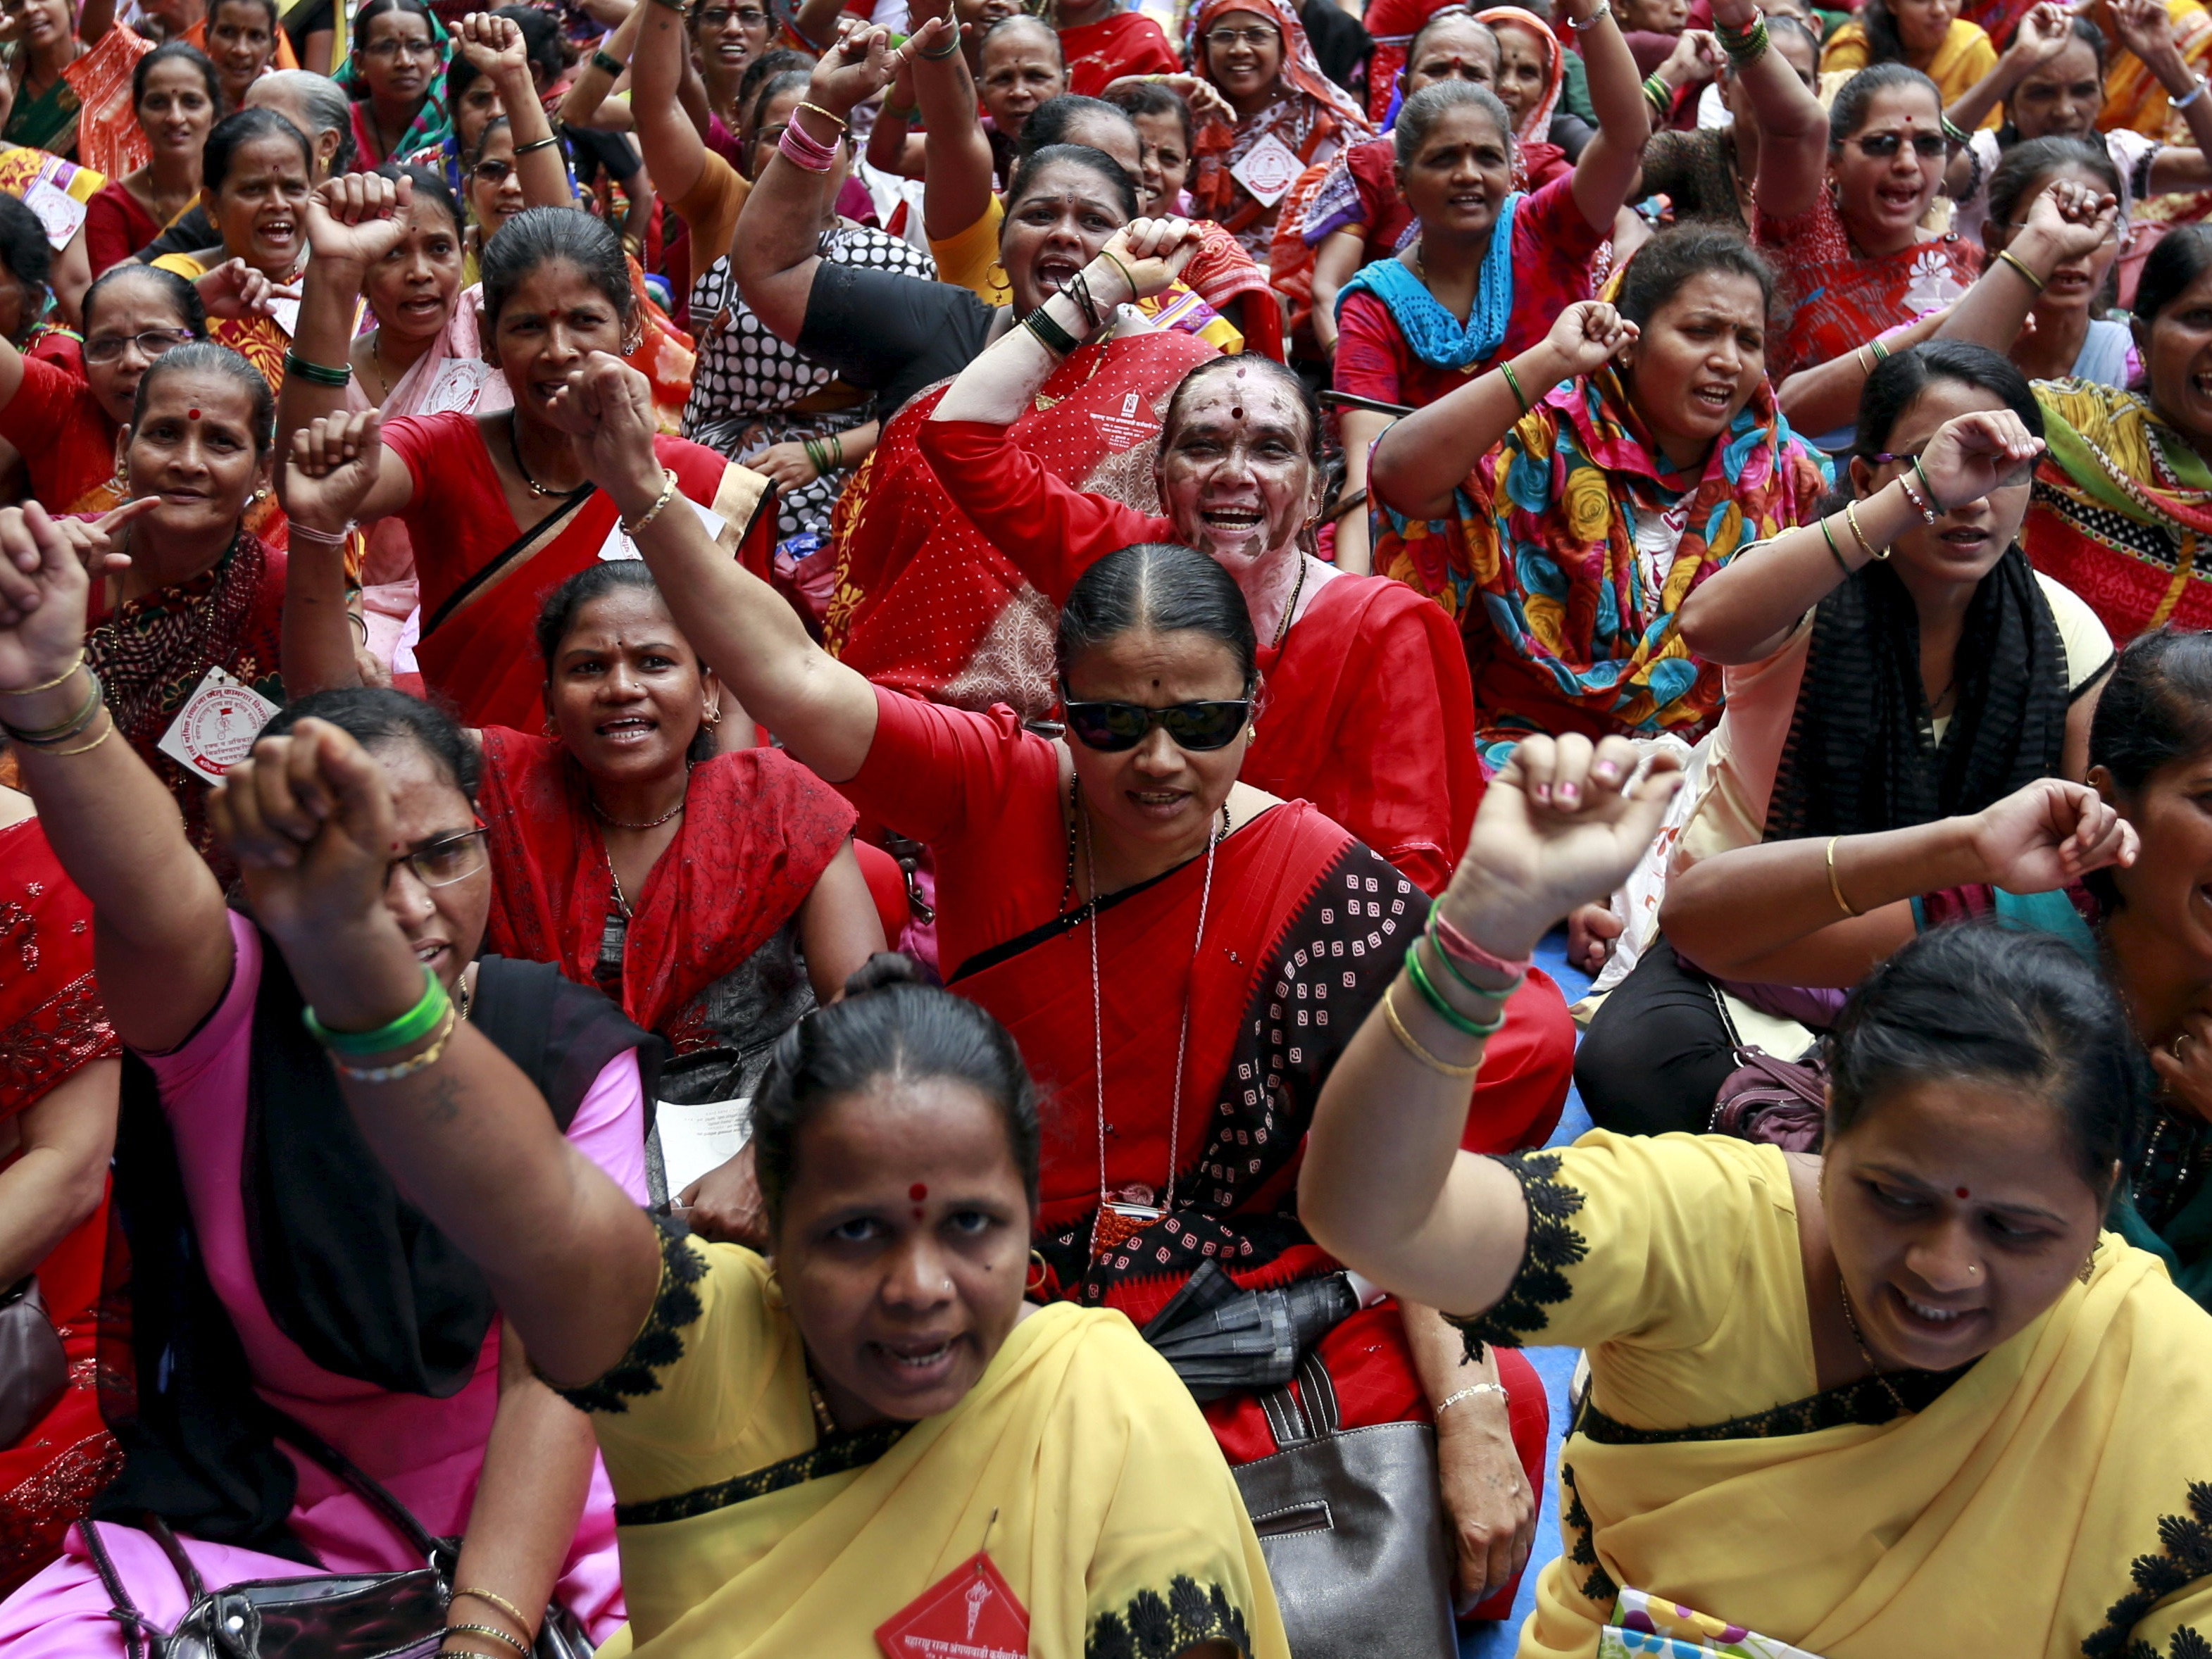 General strike in India fights Modi's anti-worker policies